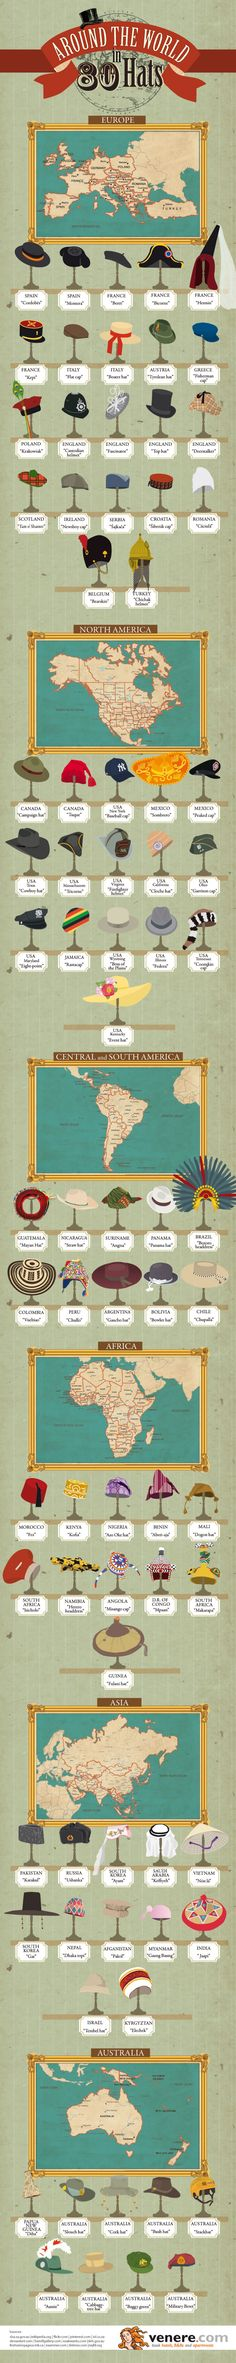 Absolutely love this Around The World In 80 Hats #Infographic So creative!